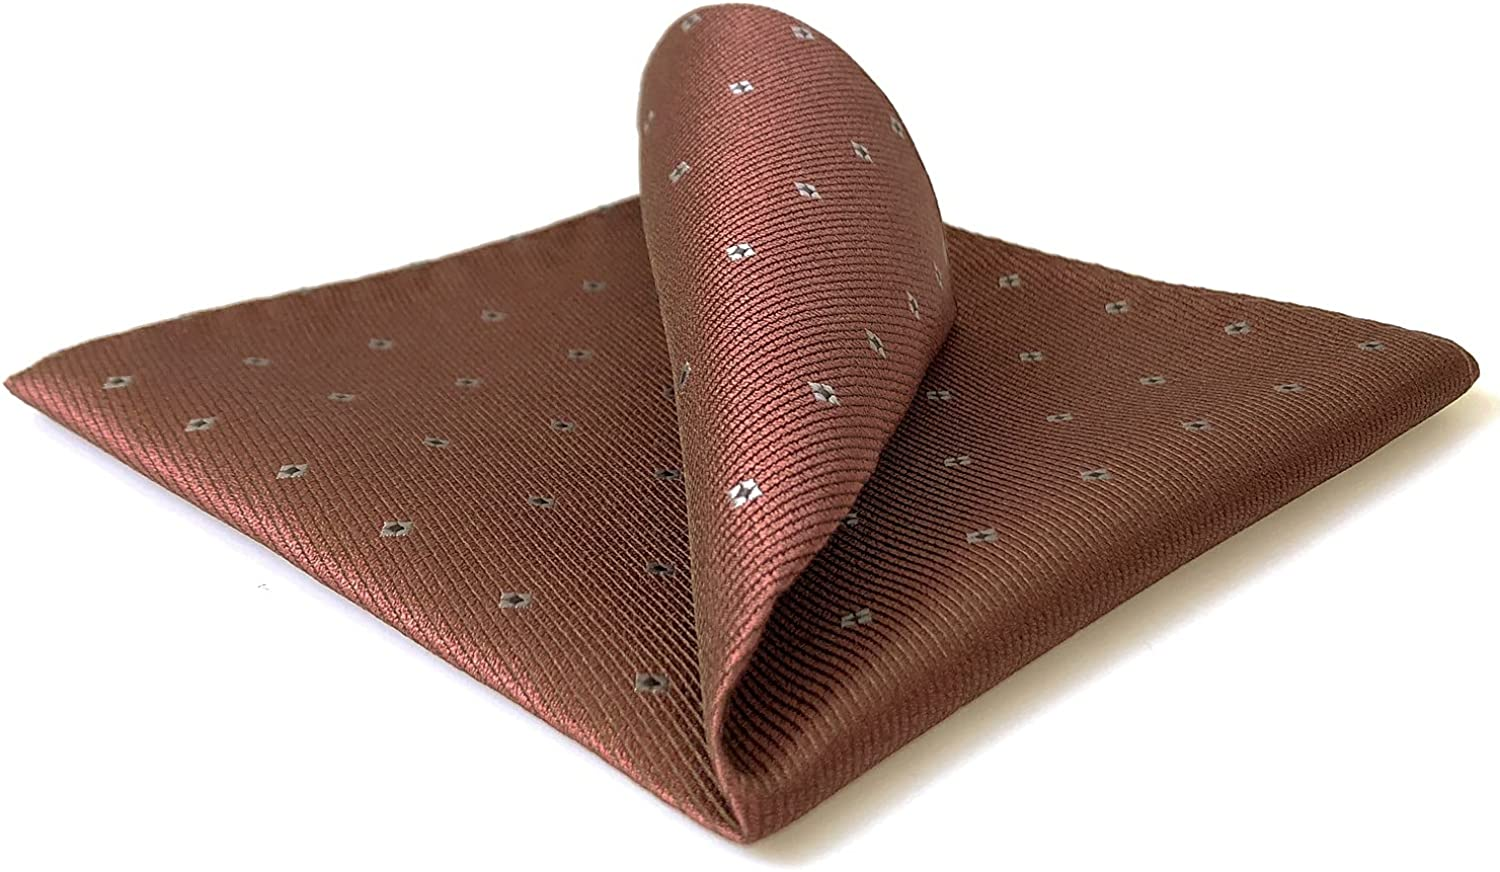 S&W SHLAX&WING Pocket Squares for Men Silk Red Brown Wedding